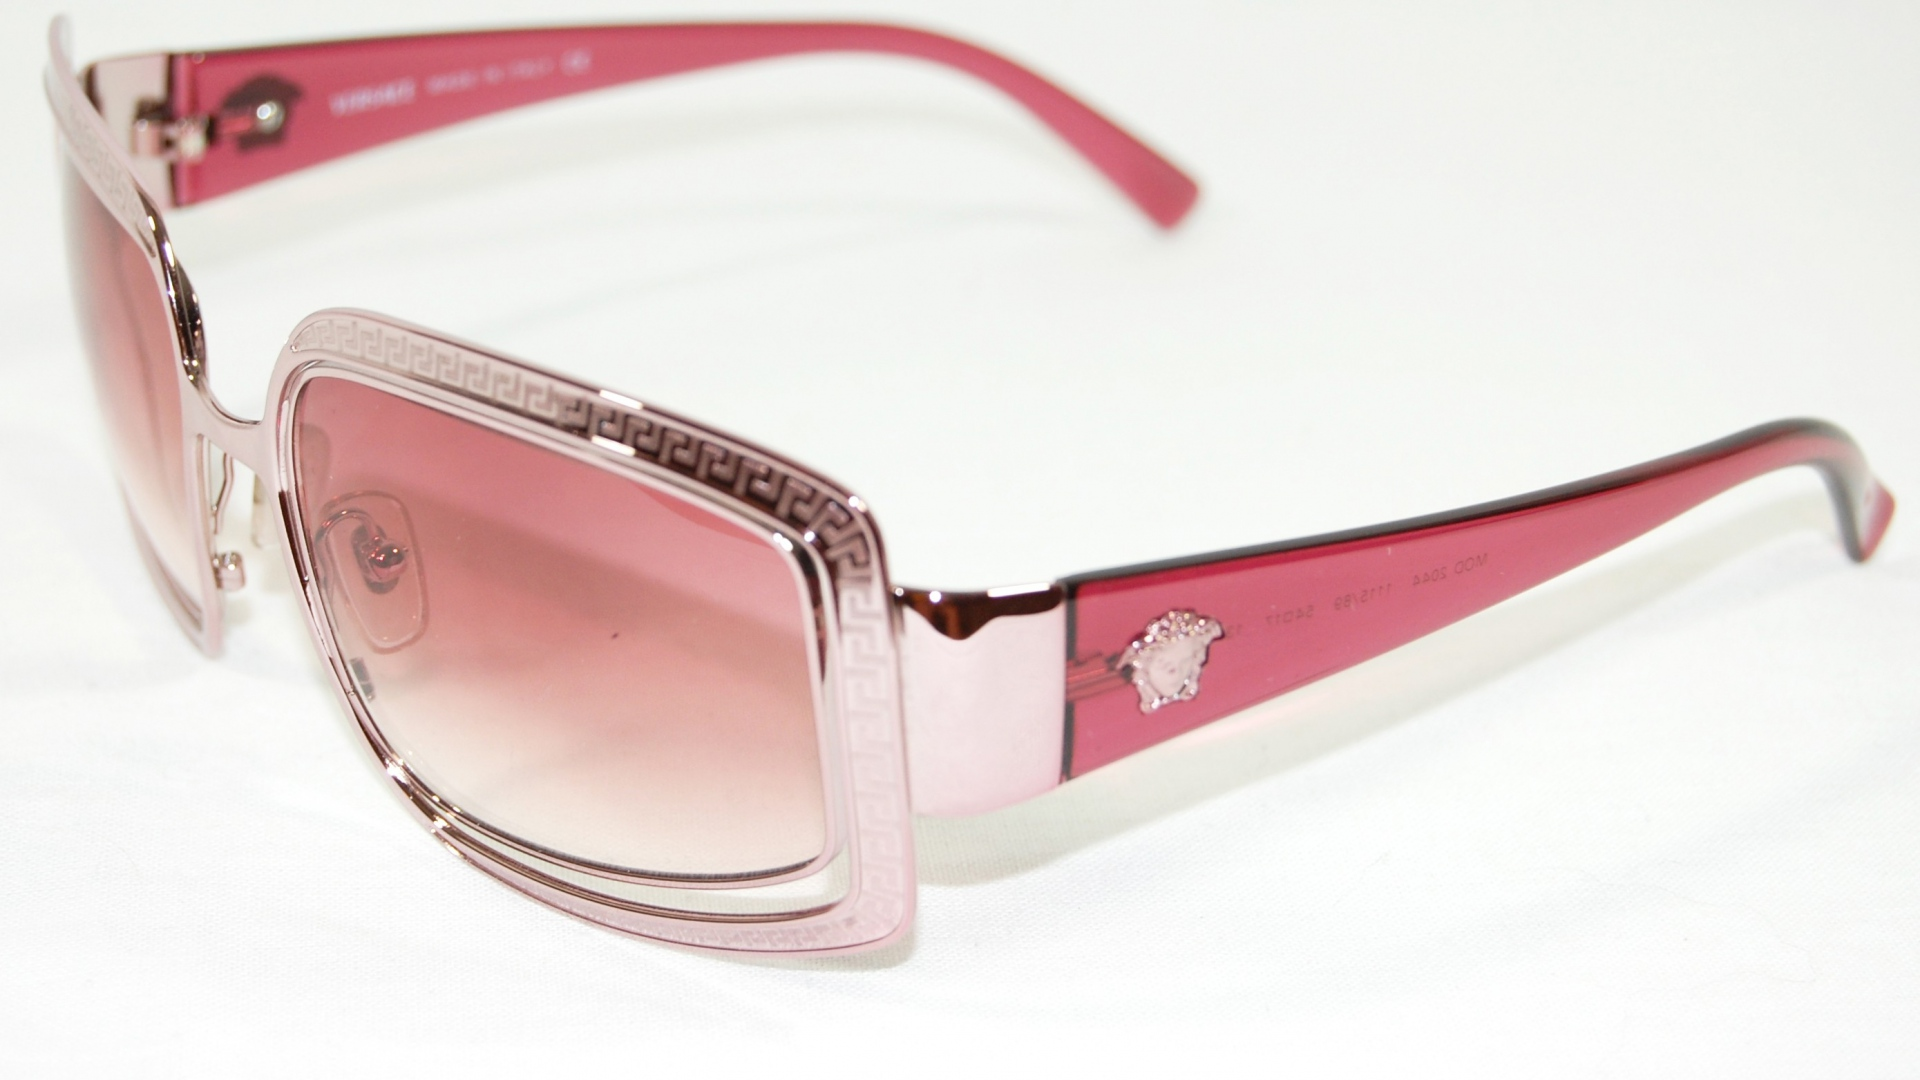 Versace Pink Sunglasses Close Up